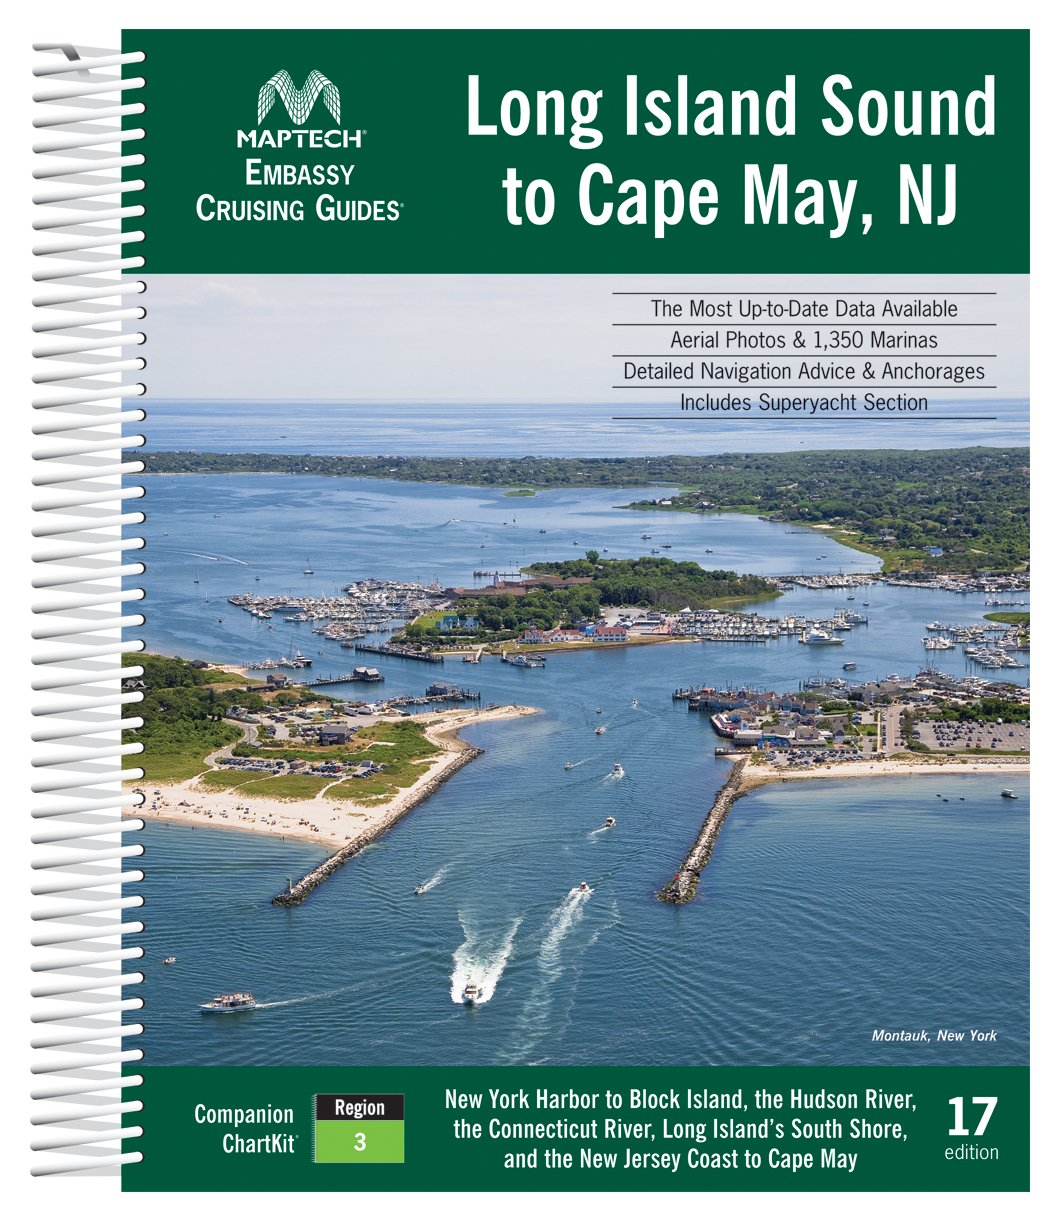 Long Island Sound to Cape May, NJ Maptech Embassy Cruising Guide 17th Edition